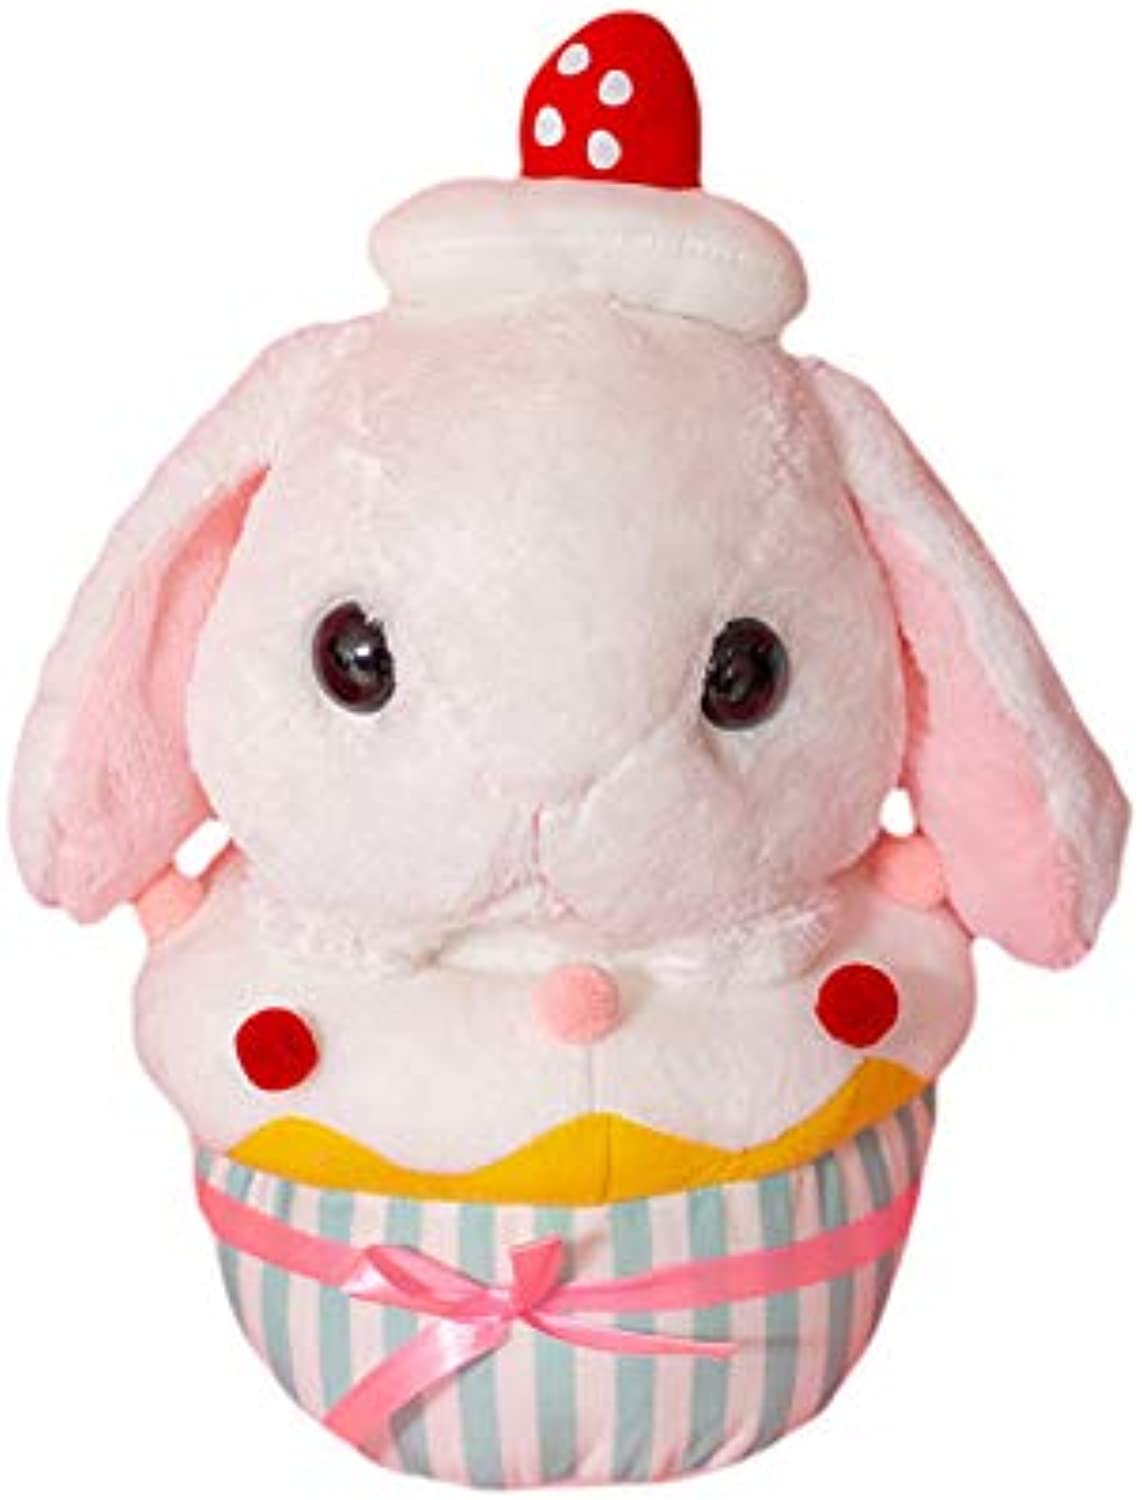 DONGER Creative Cute Dreamy Lop Ear Rabbit Cupcake Toy Big Doll, White, 40Cm